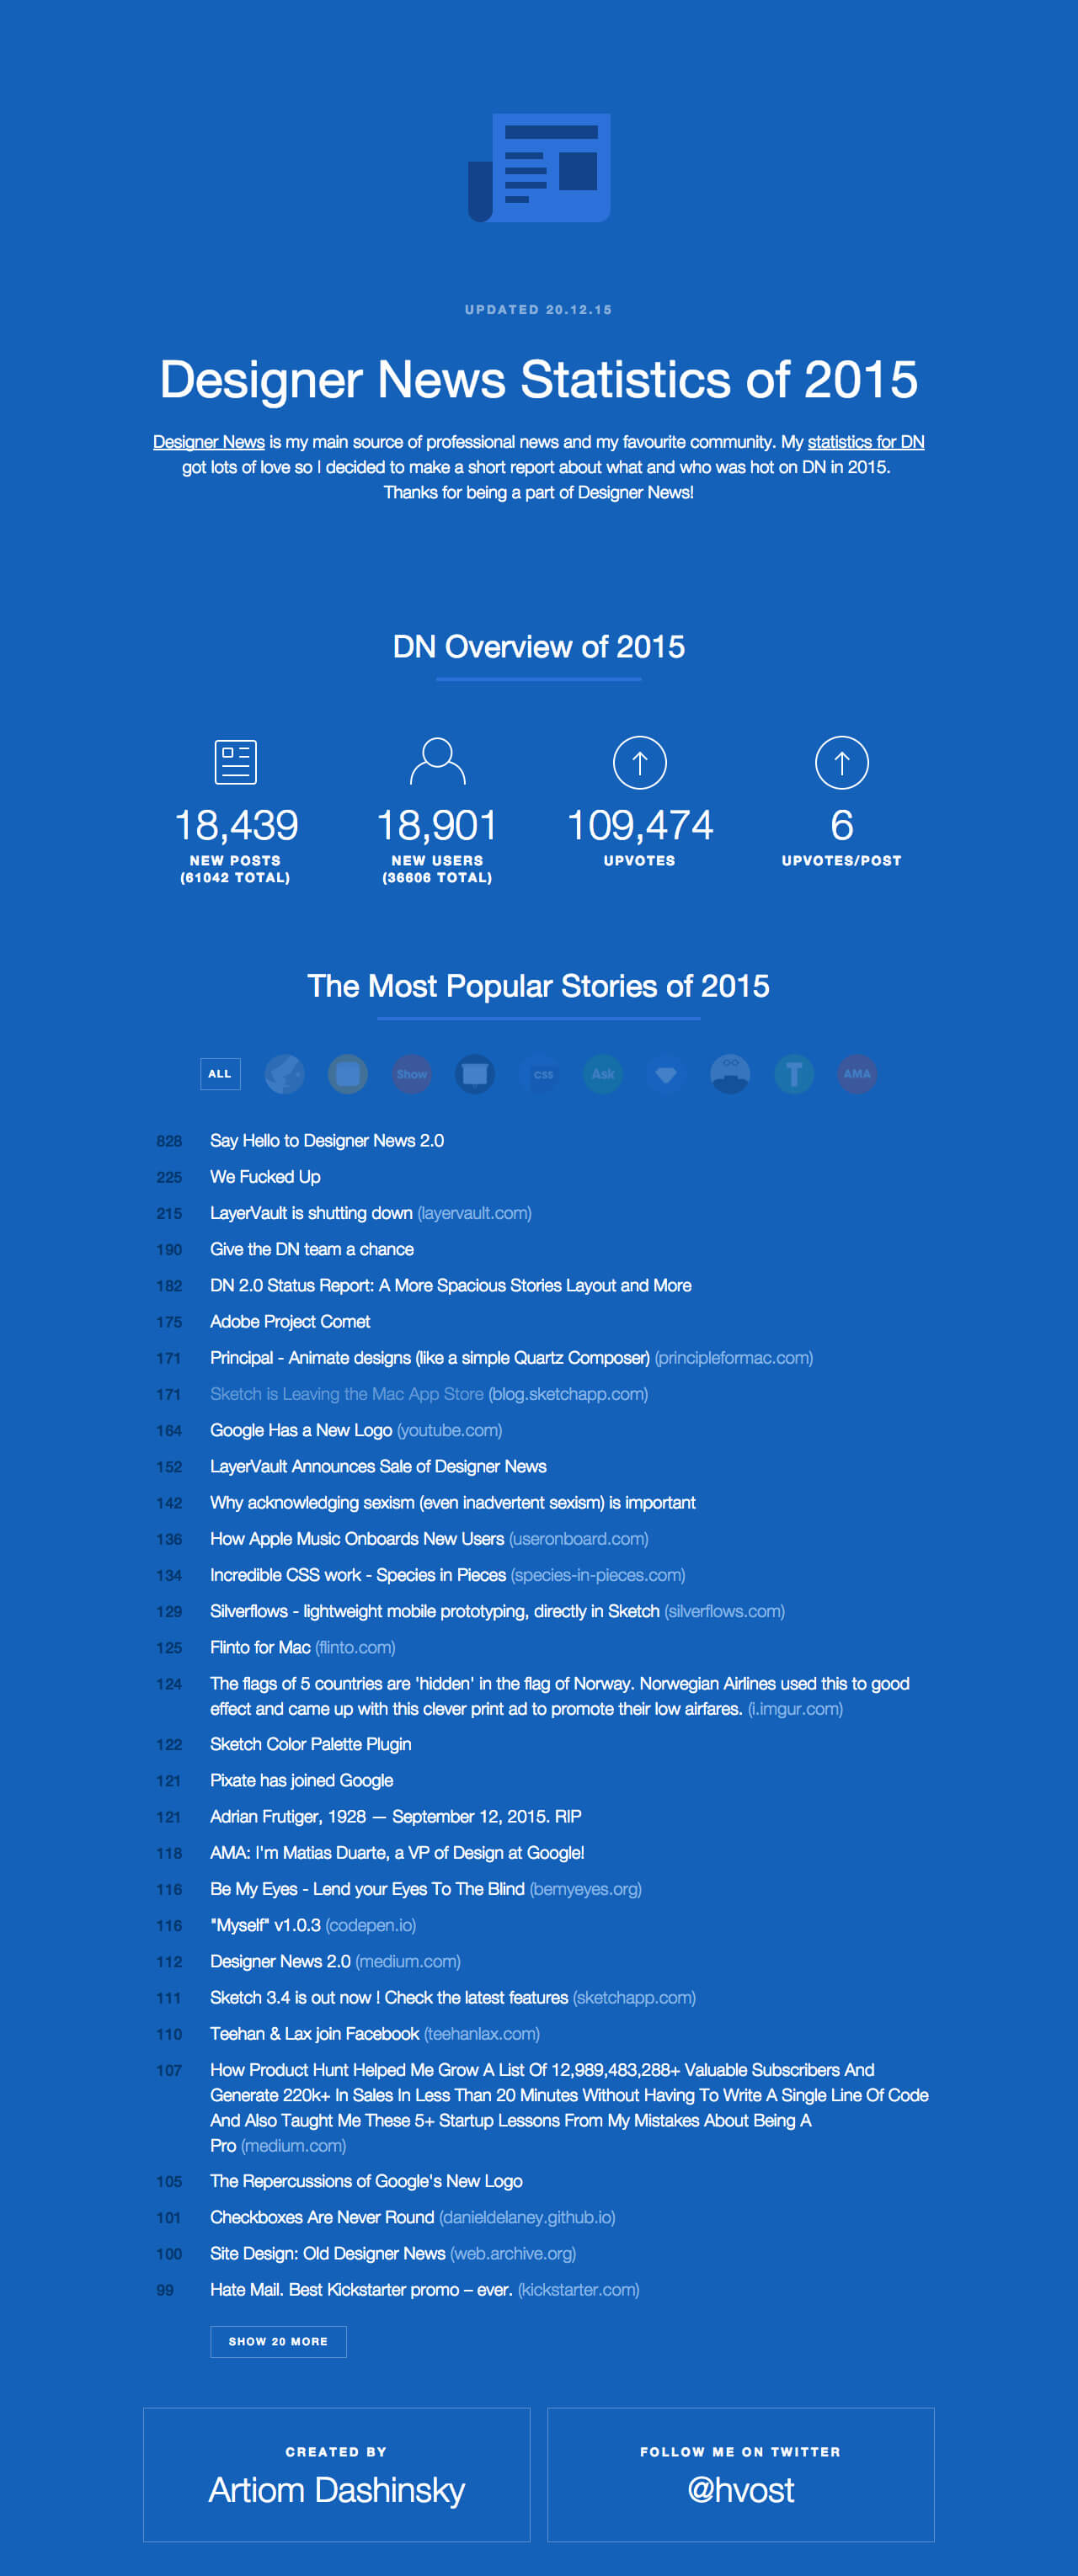 Designer News Statistics of 2015